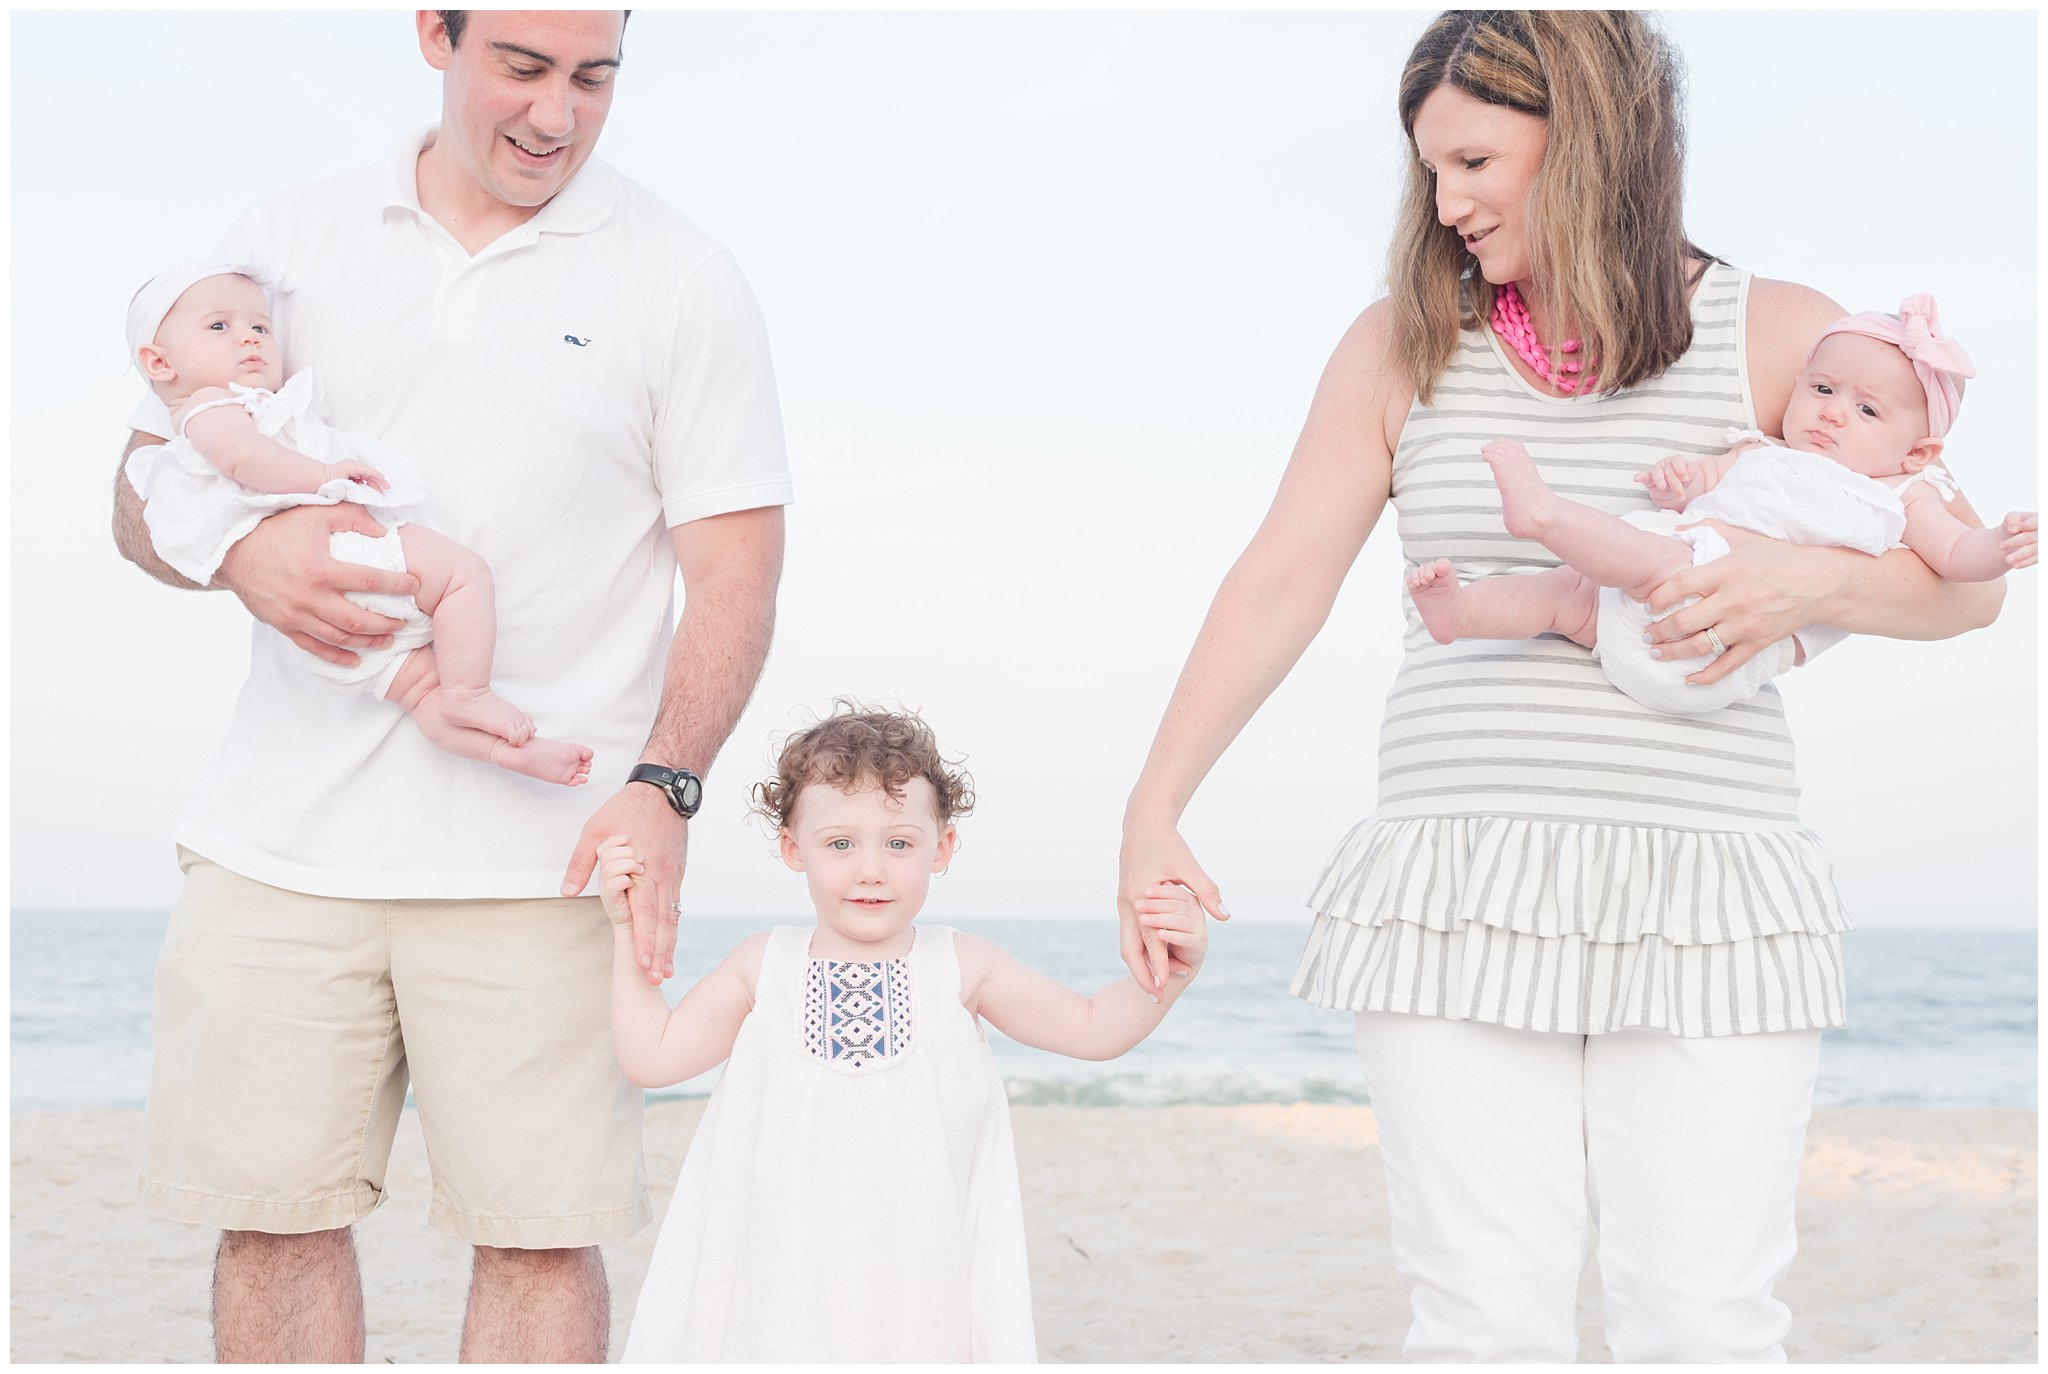 Family Photographer Lavallette Nj Keri Calabrese Photography